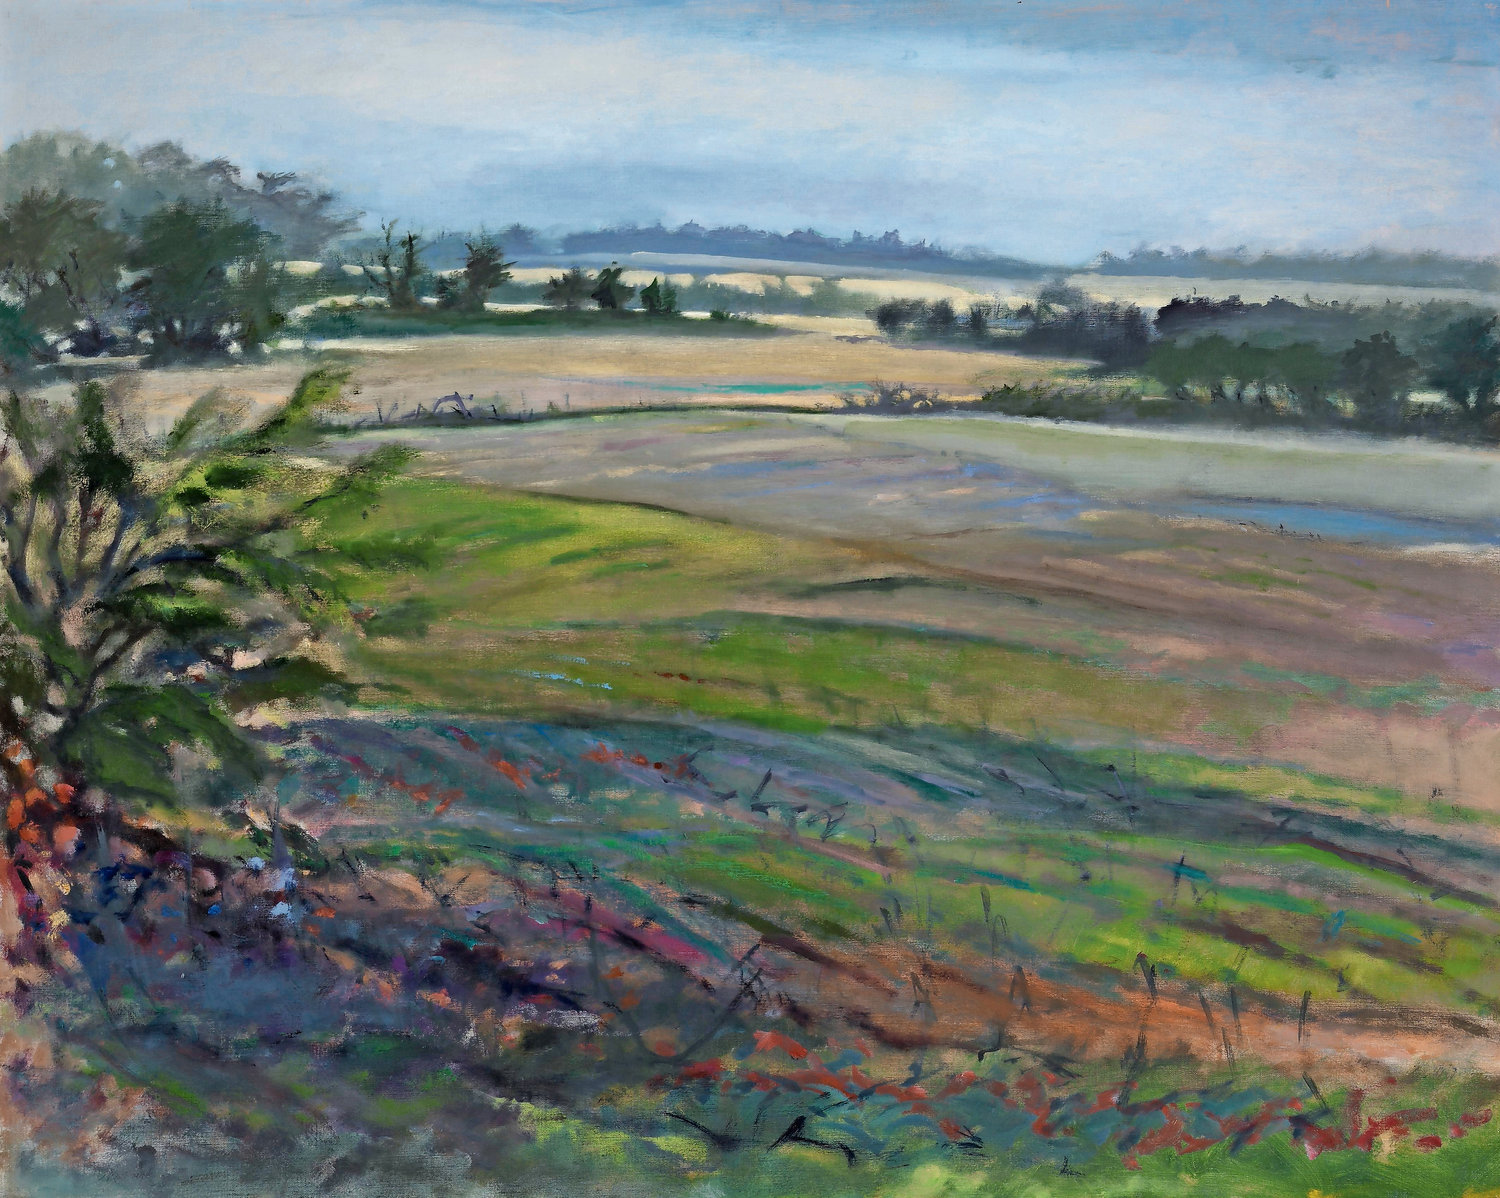 Don Resnick, Fields After Rain, 1984, oil on canvas; The Heckscher Museum of Art